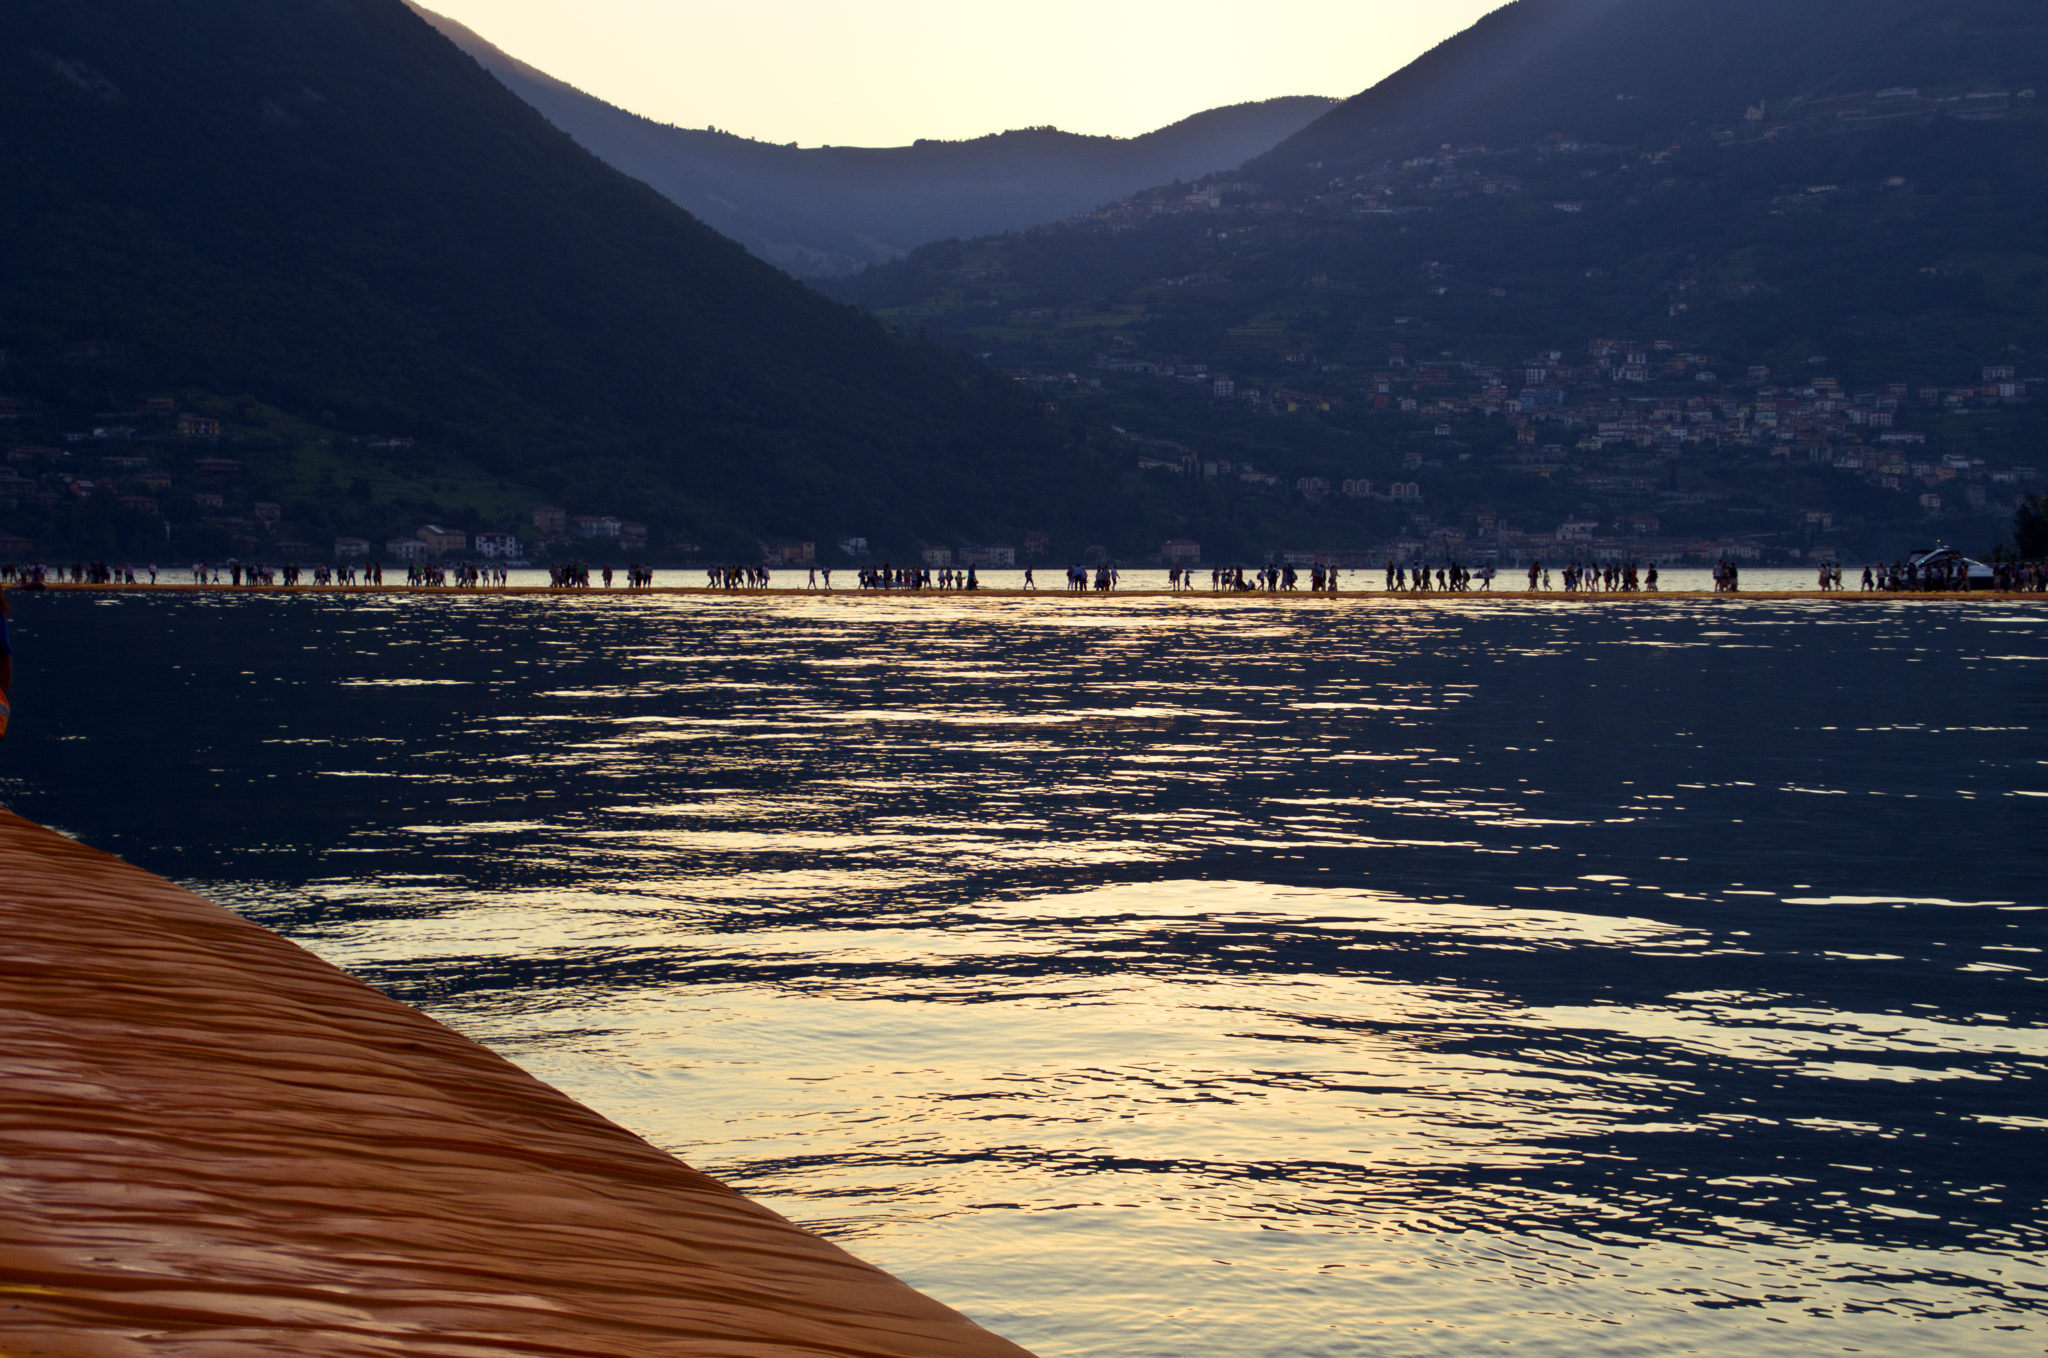 A spasso per The Floating Piers. Le foto del cammino arancio di Christo